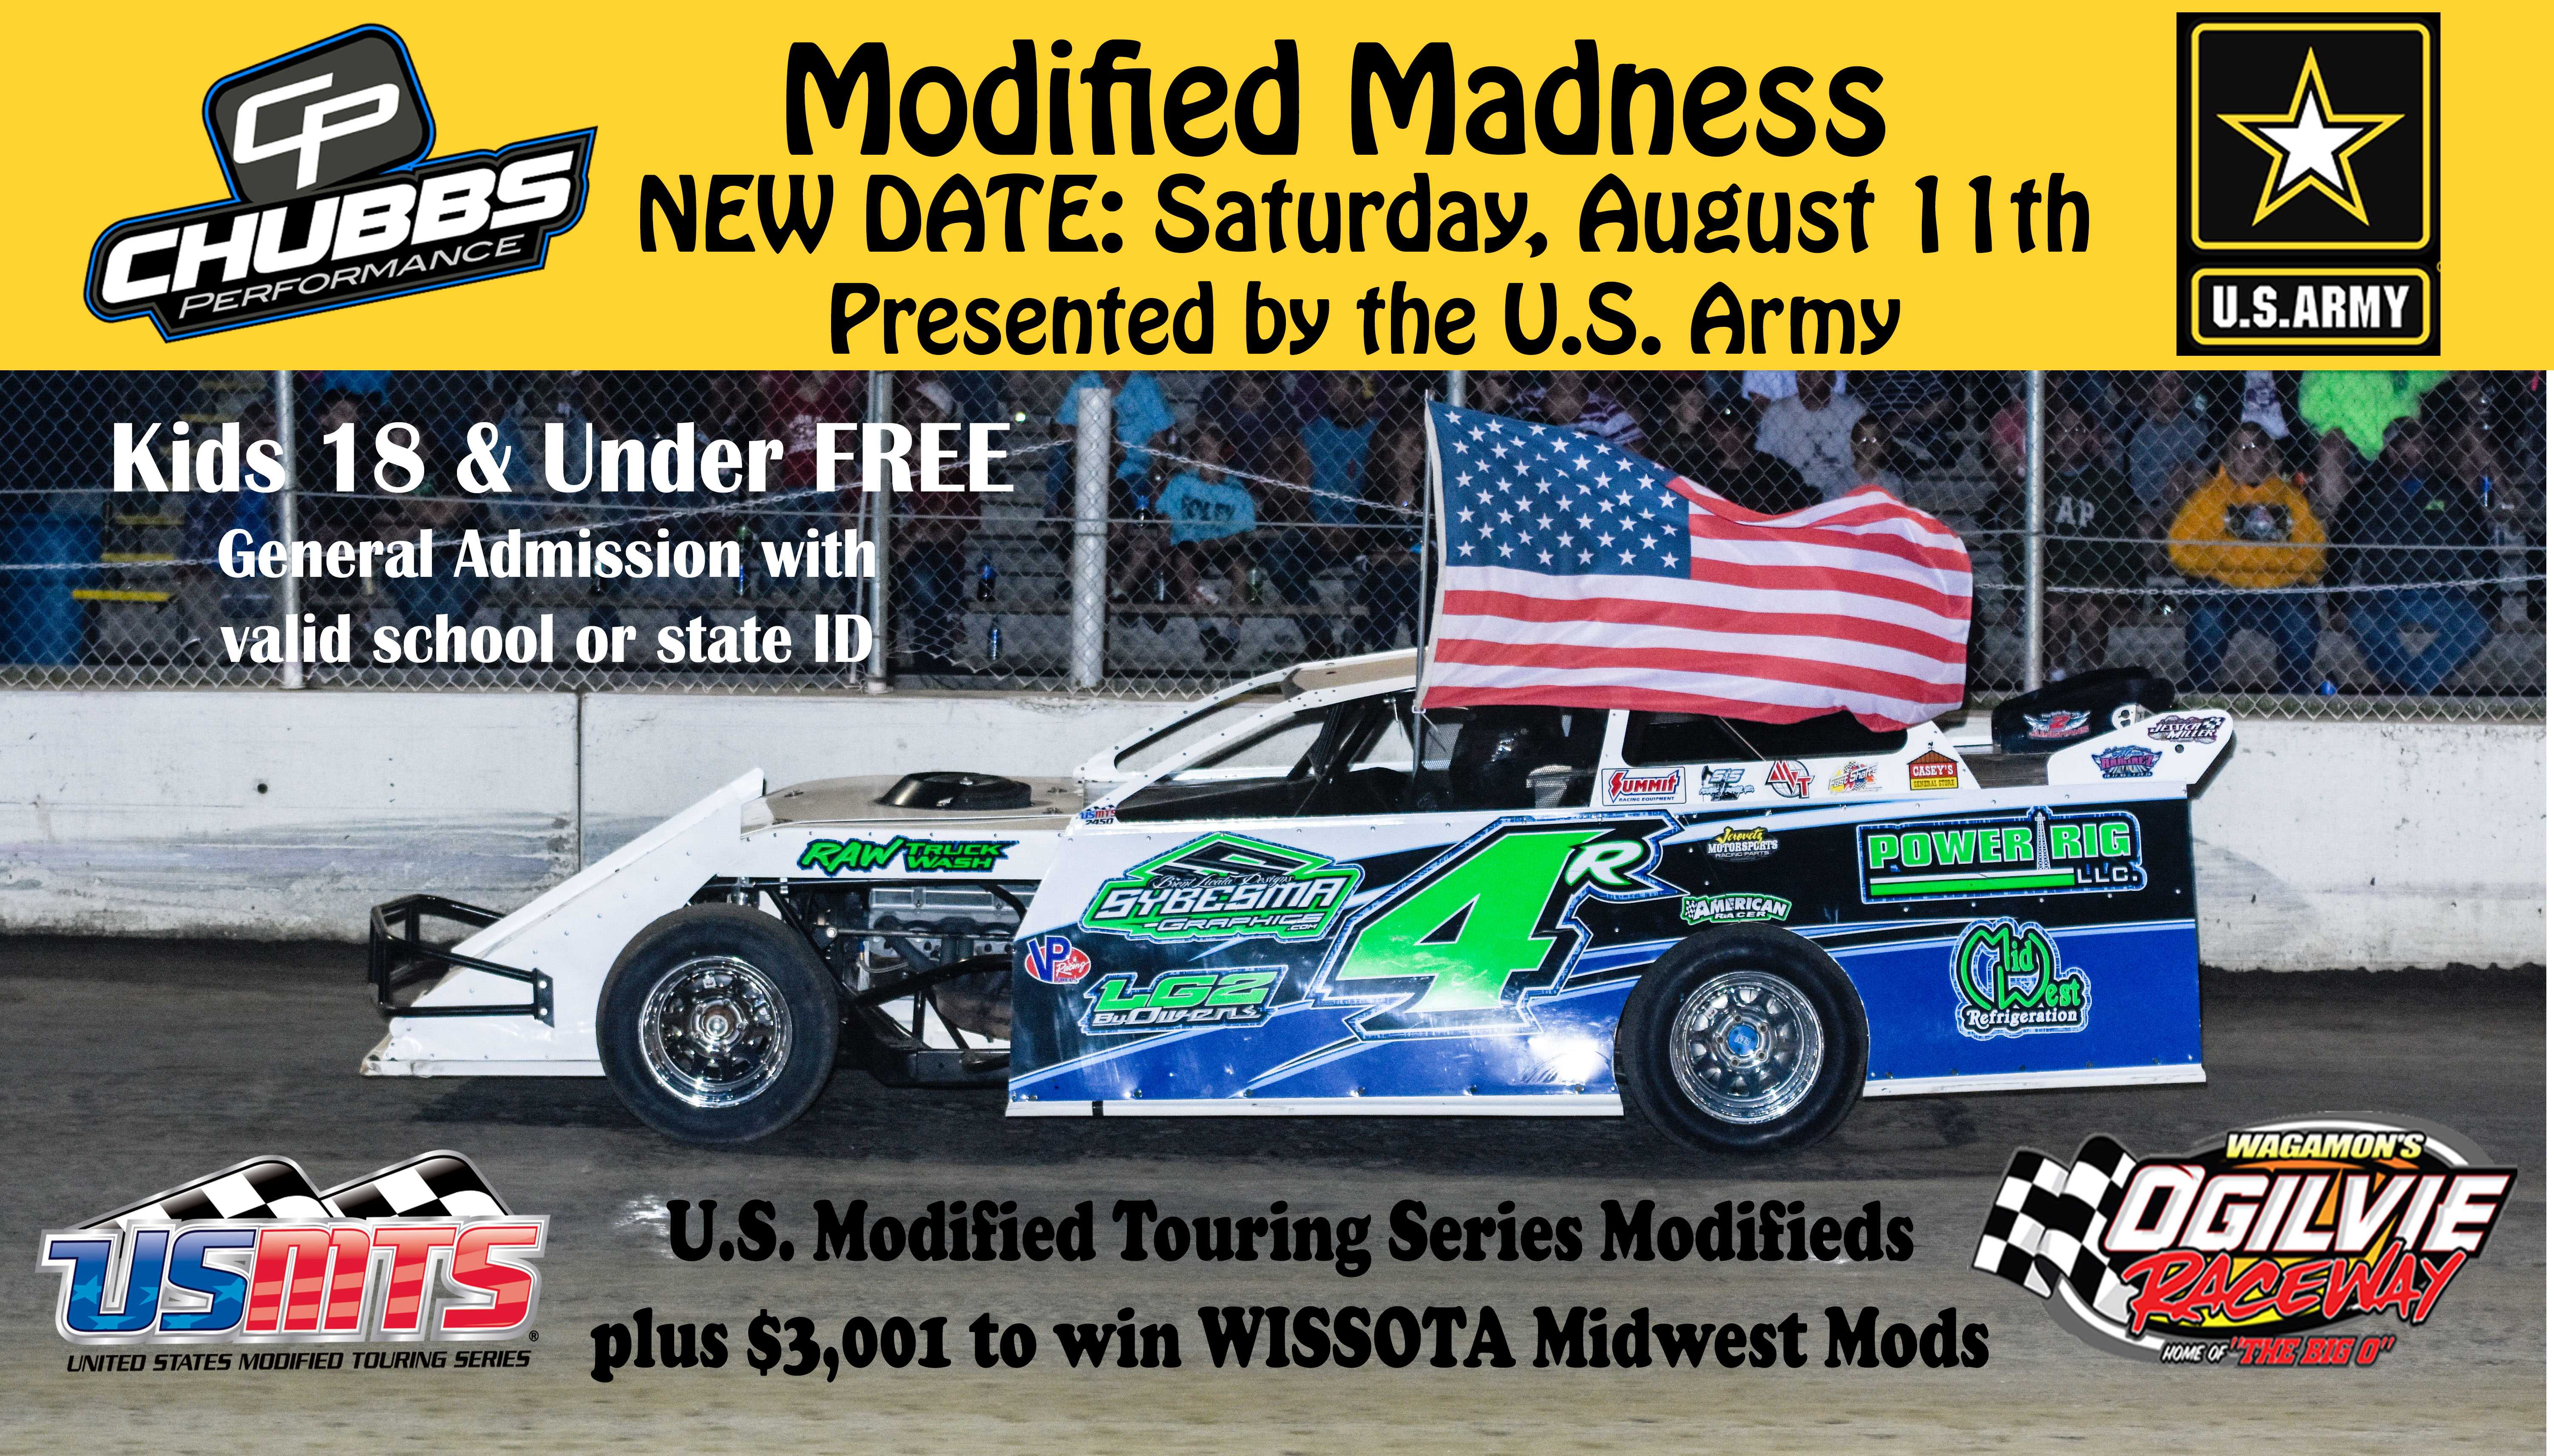 NO RACING May 19th – USMTS Chubbs Performance Mod Madness Rescheduled for August 11th